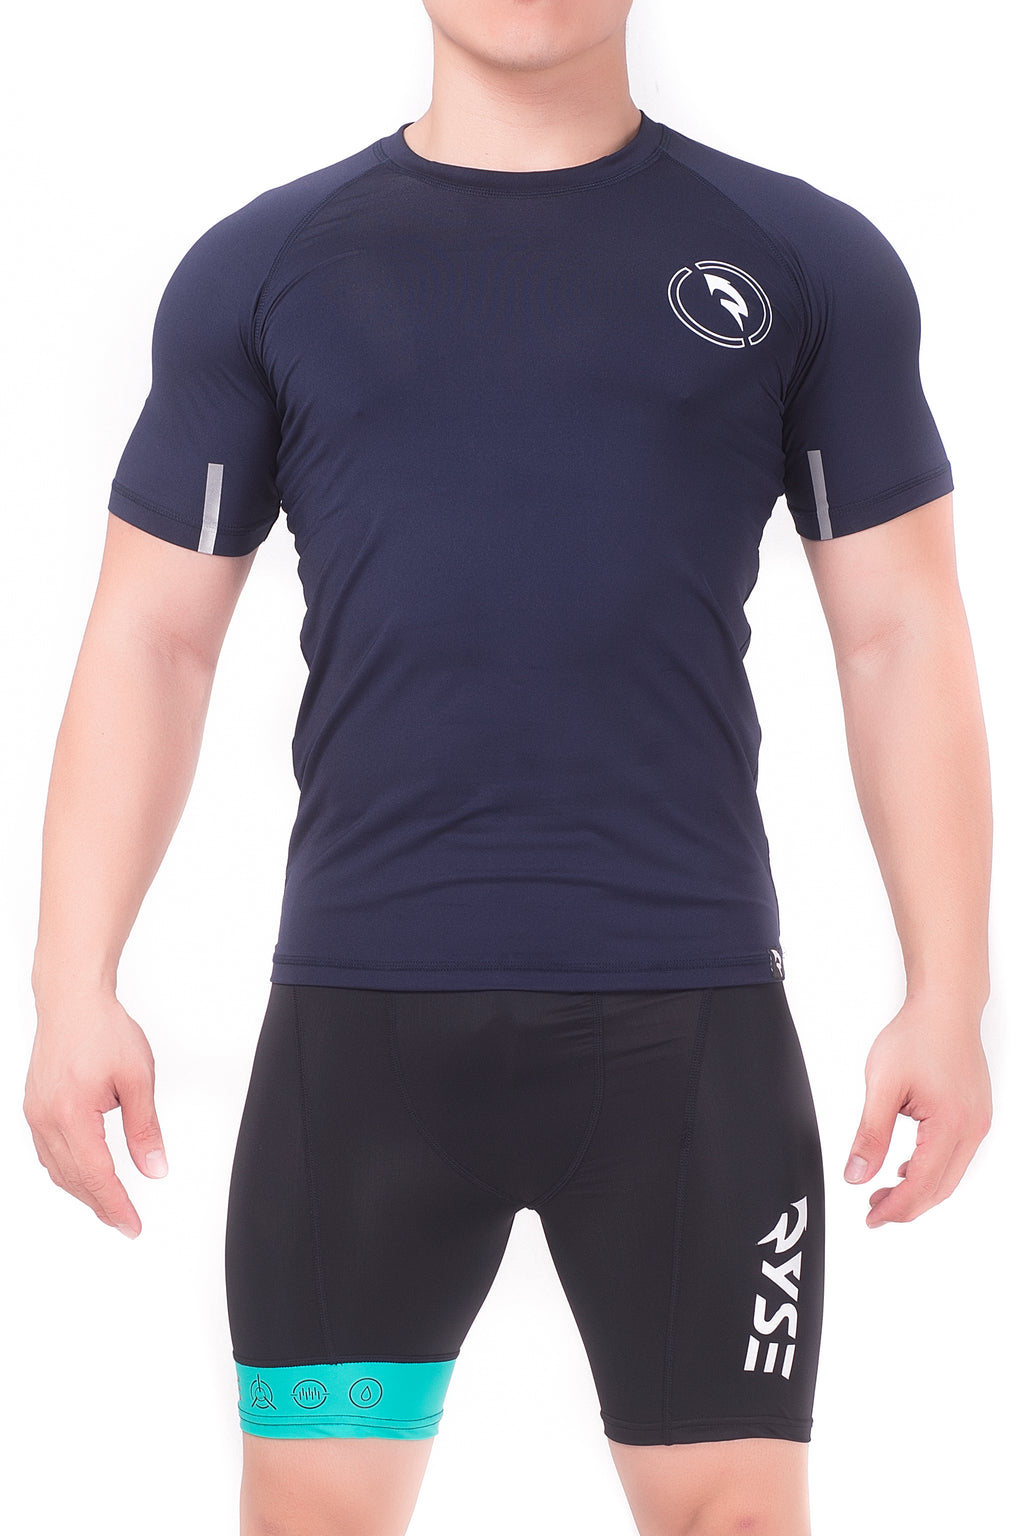 Ventilator Stretch-Fit™ Shirt